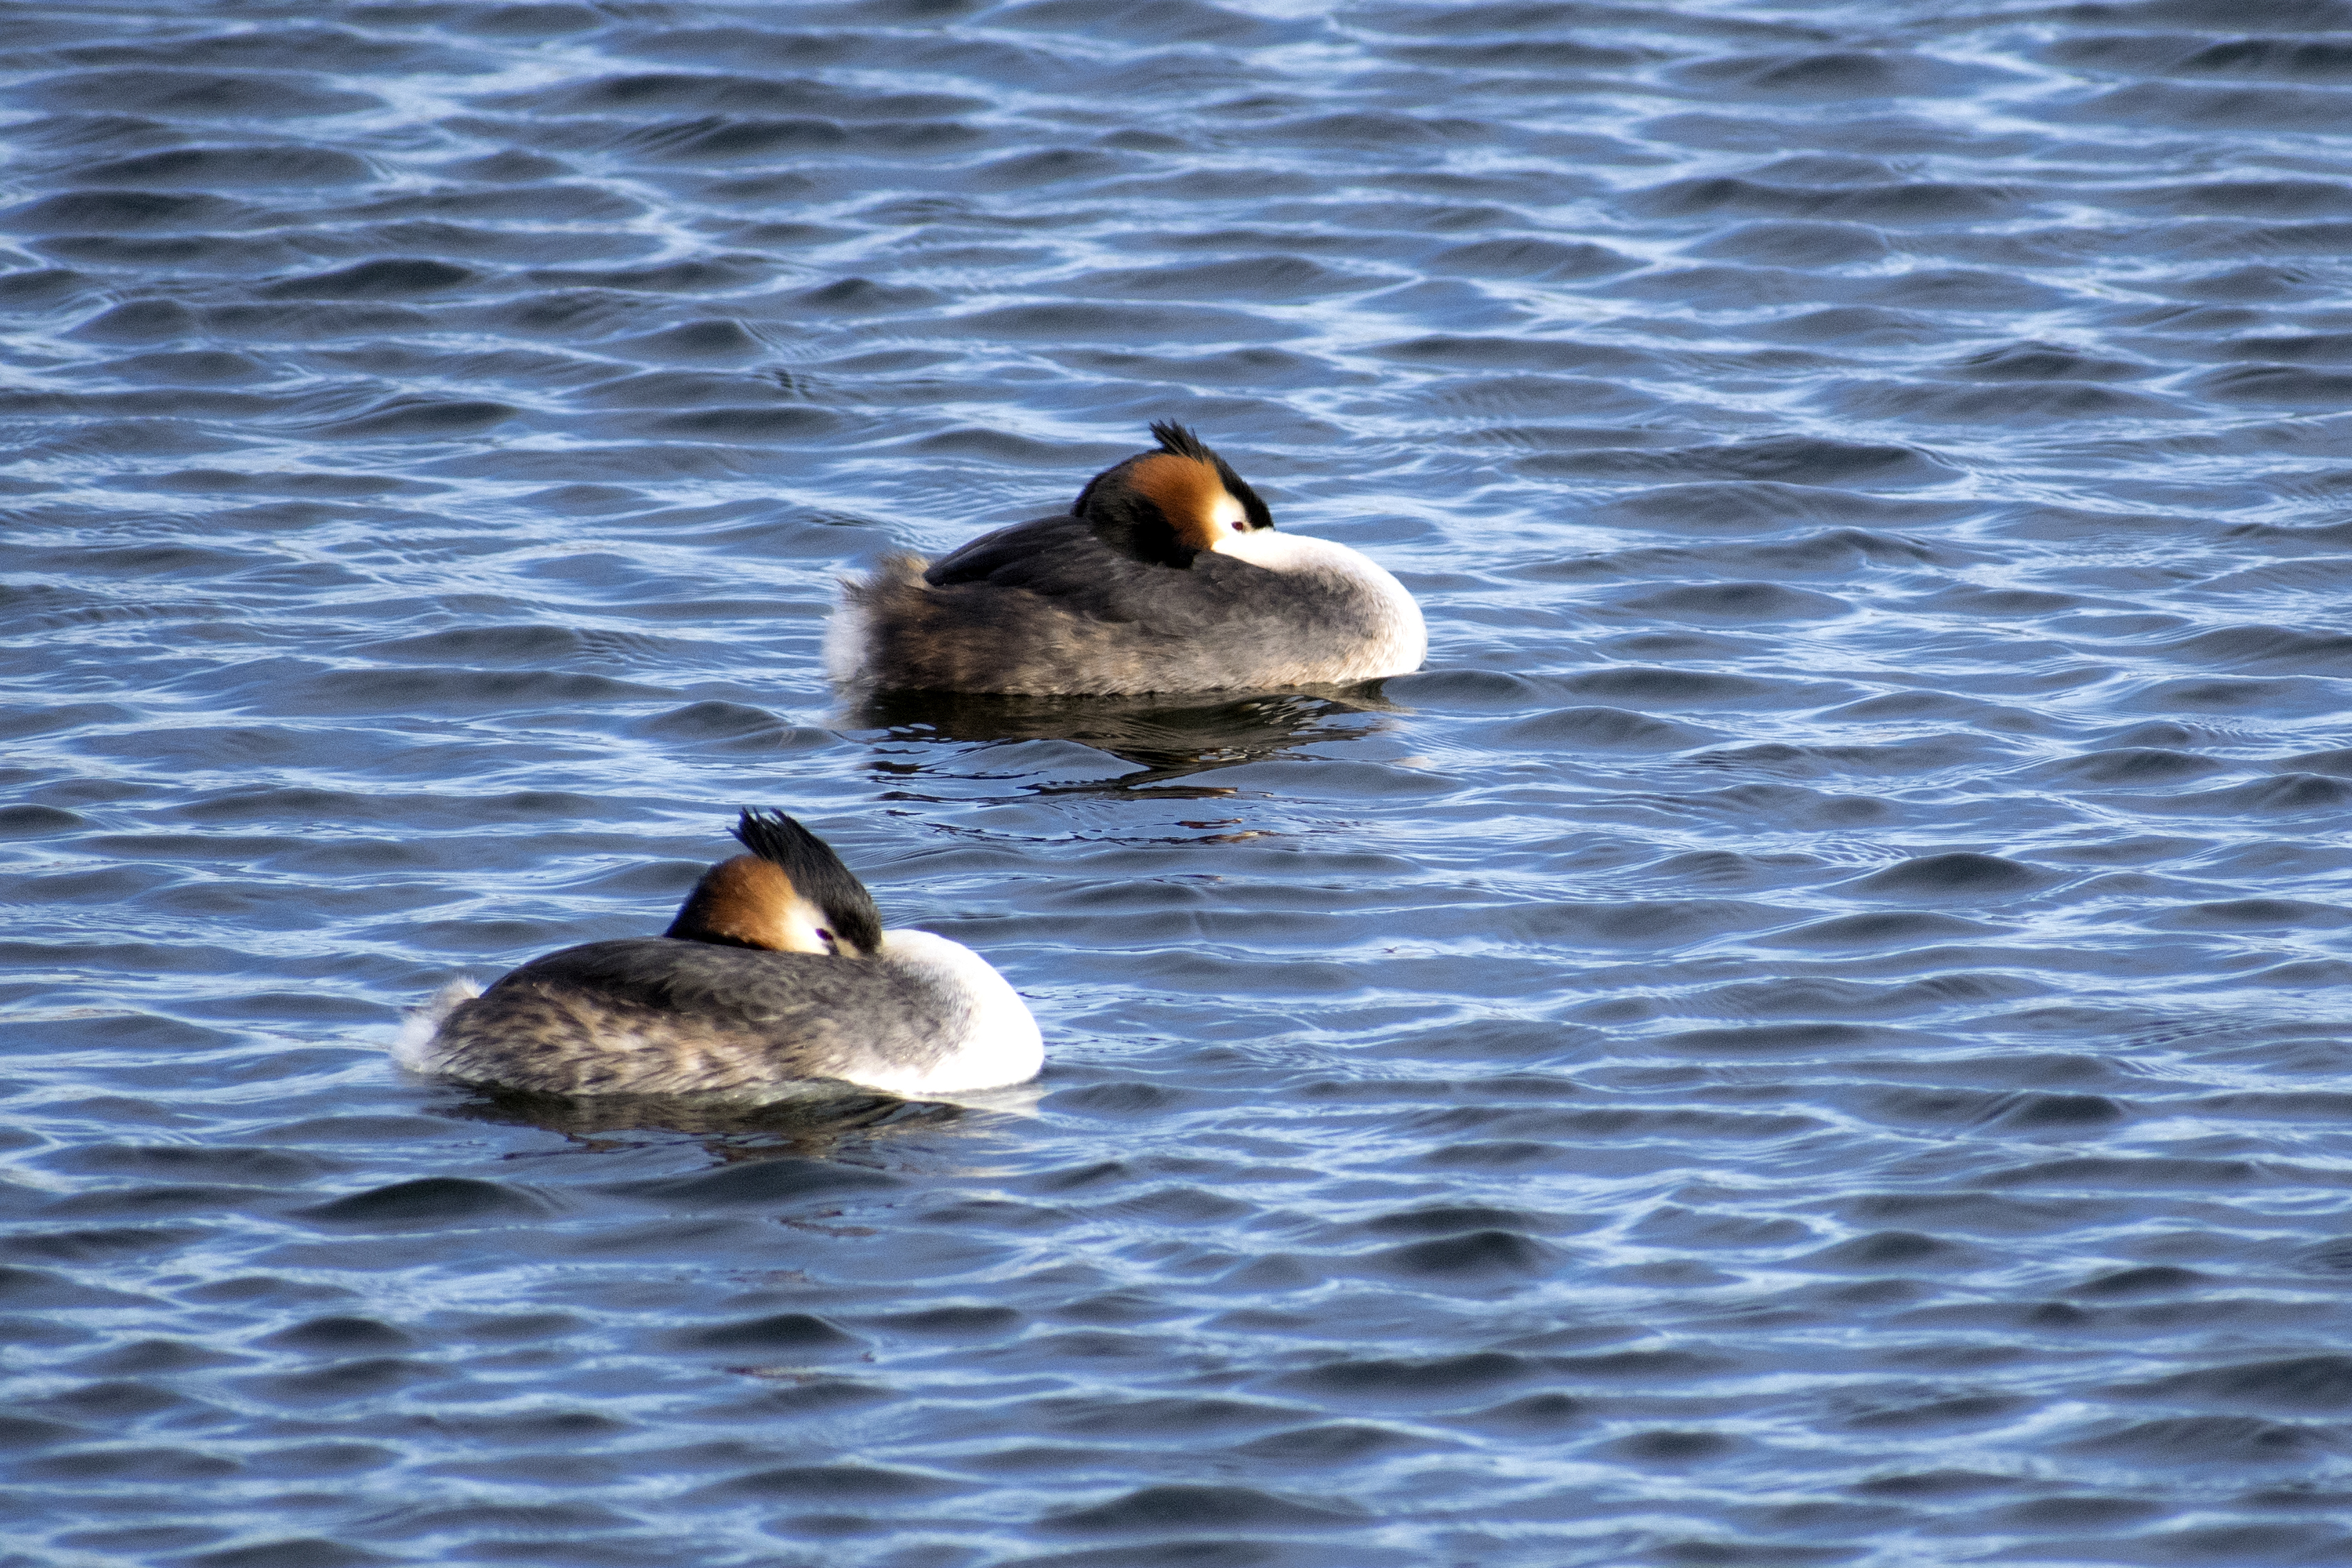 Great Crested Grebe Windy Spring Day Walthamstow Wetlands